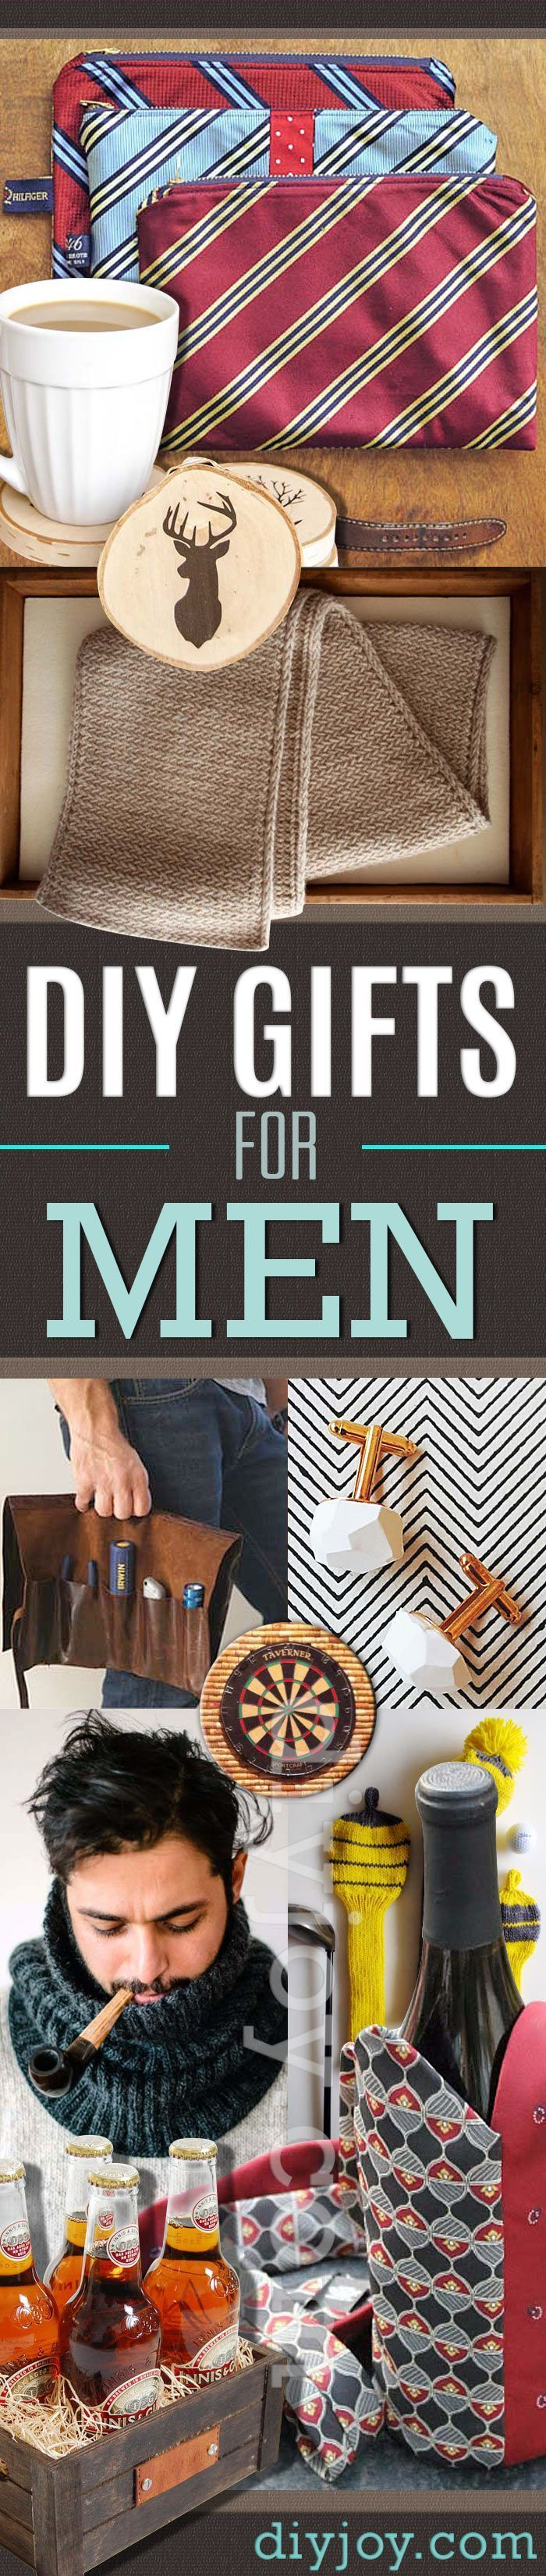 Best DIY Gifts for Men and Homemade Craft Ideas for Boyfriend, Dad, Brother, Father and Husband diyjoy.com/...